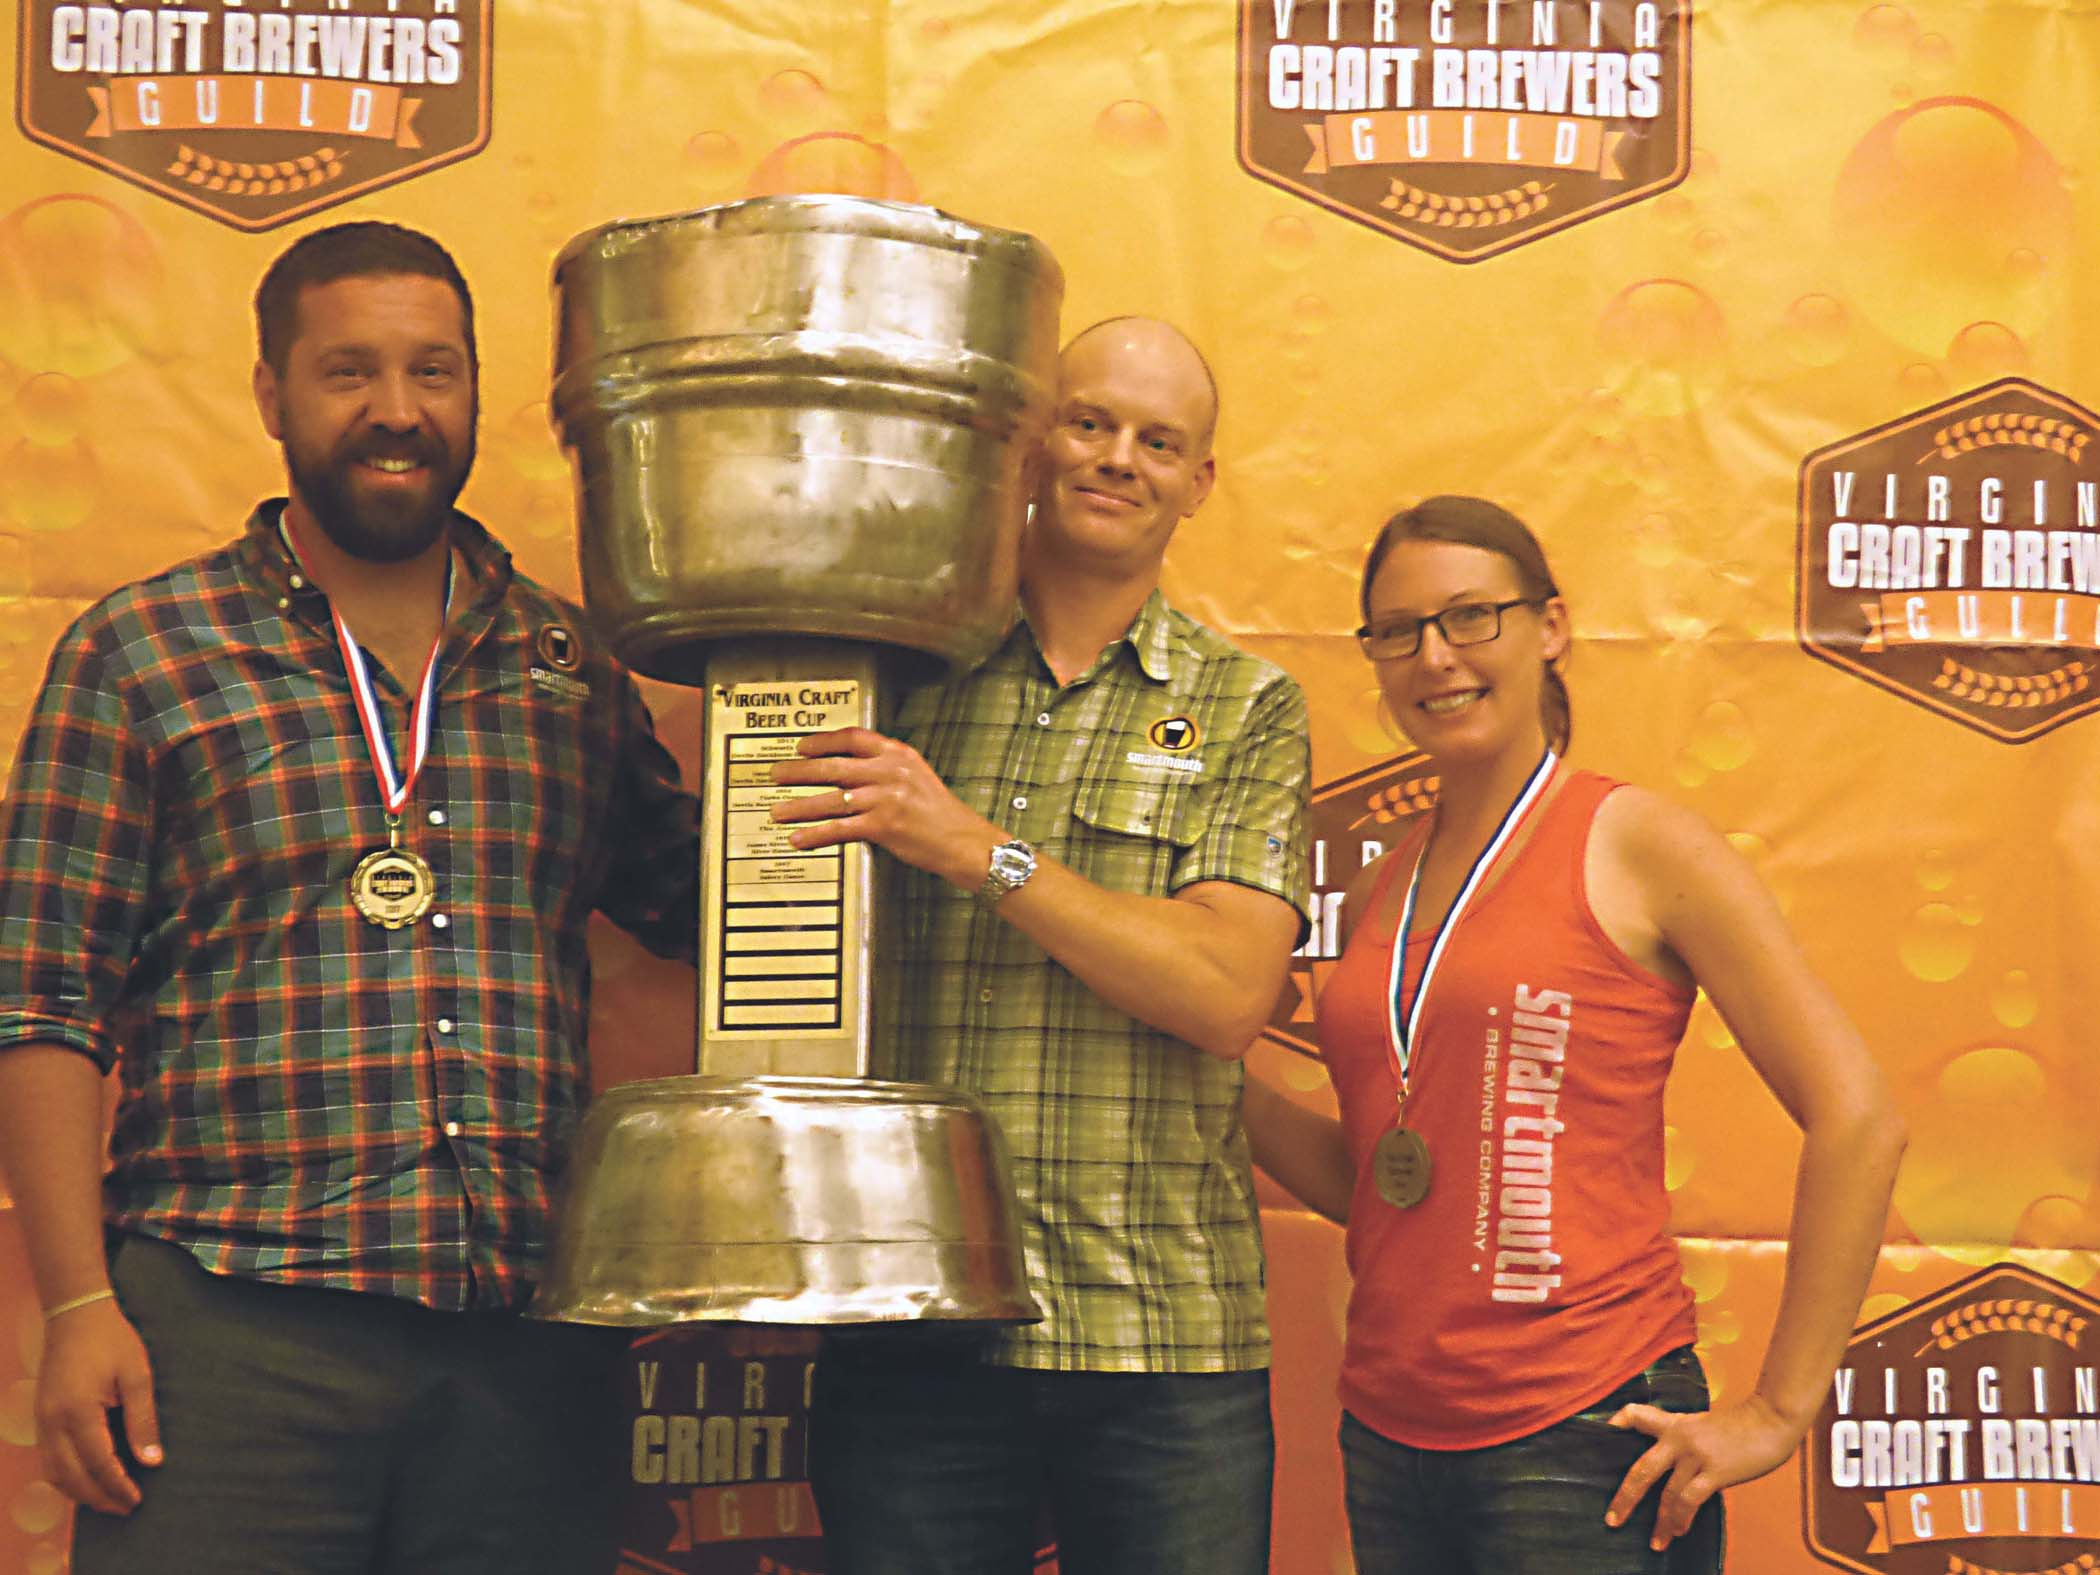 Smartmouth wins 2017 Virginia Craft Beer Cup